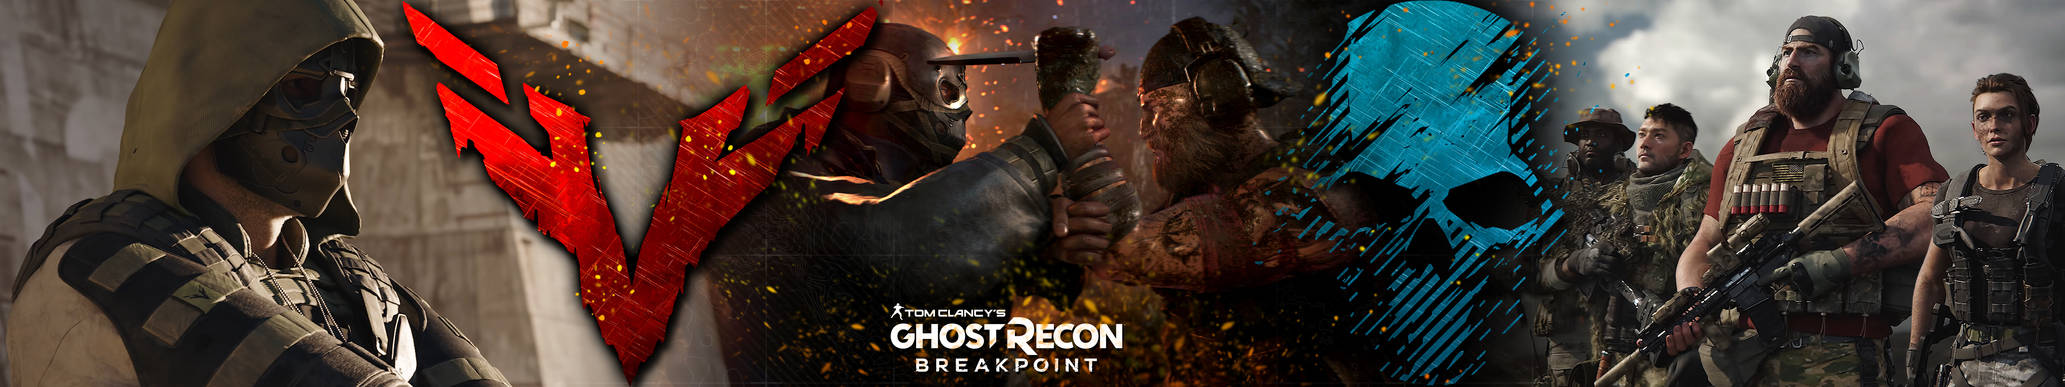 Ghost Recon BreakPoint Confrontation